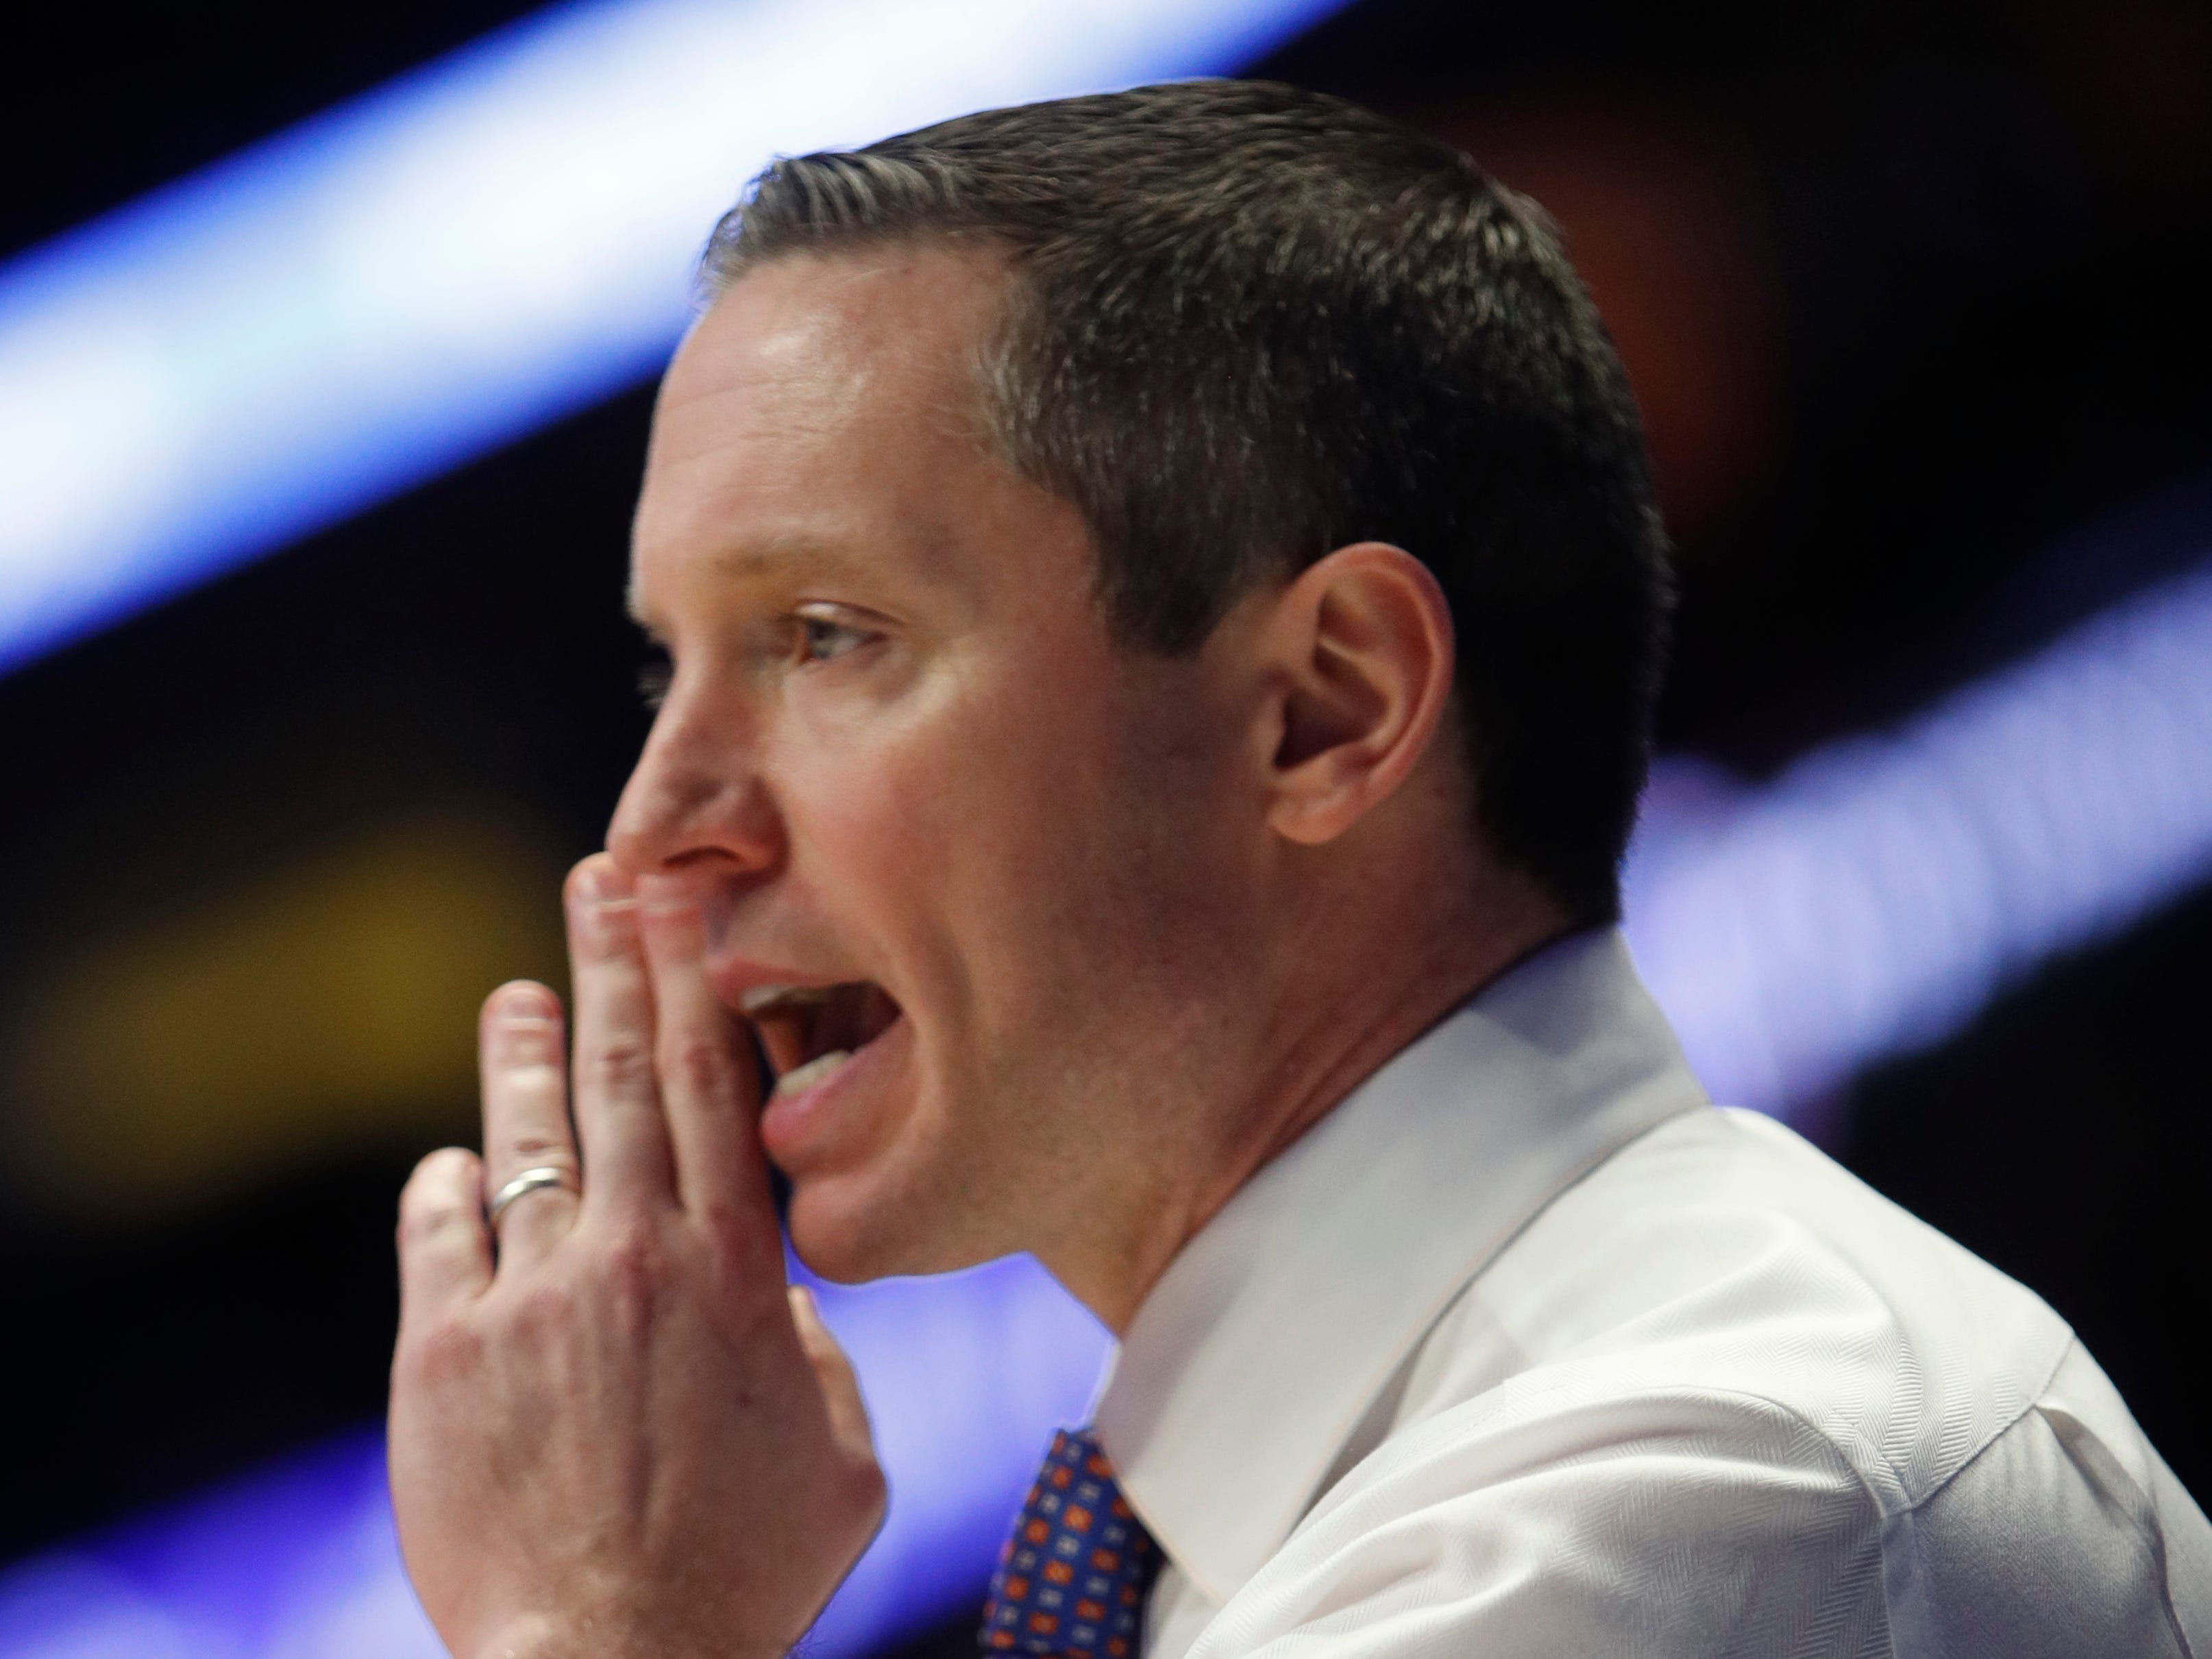 Florida head coach Mike White yells to his team during the second half of the SEC Men's Basketball Tournament game at Bridgestone Arena in Nashville, Tenn., Thursday, March 14, 2019.